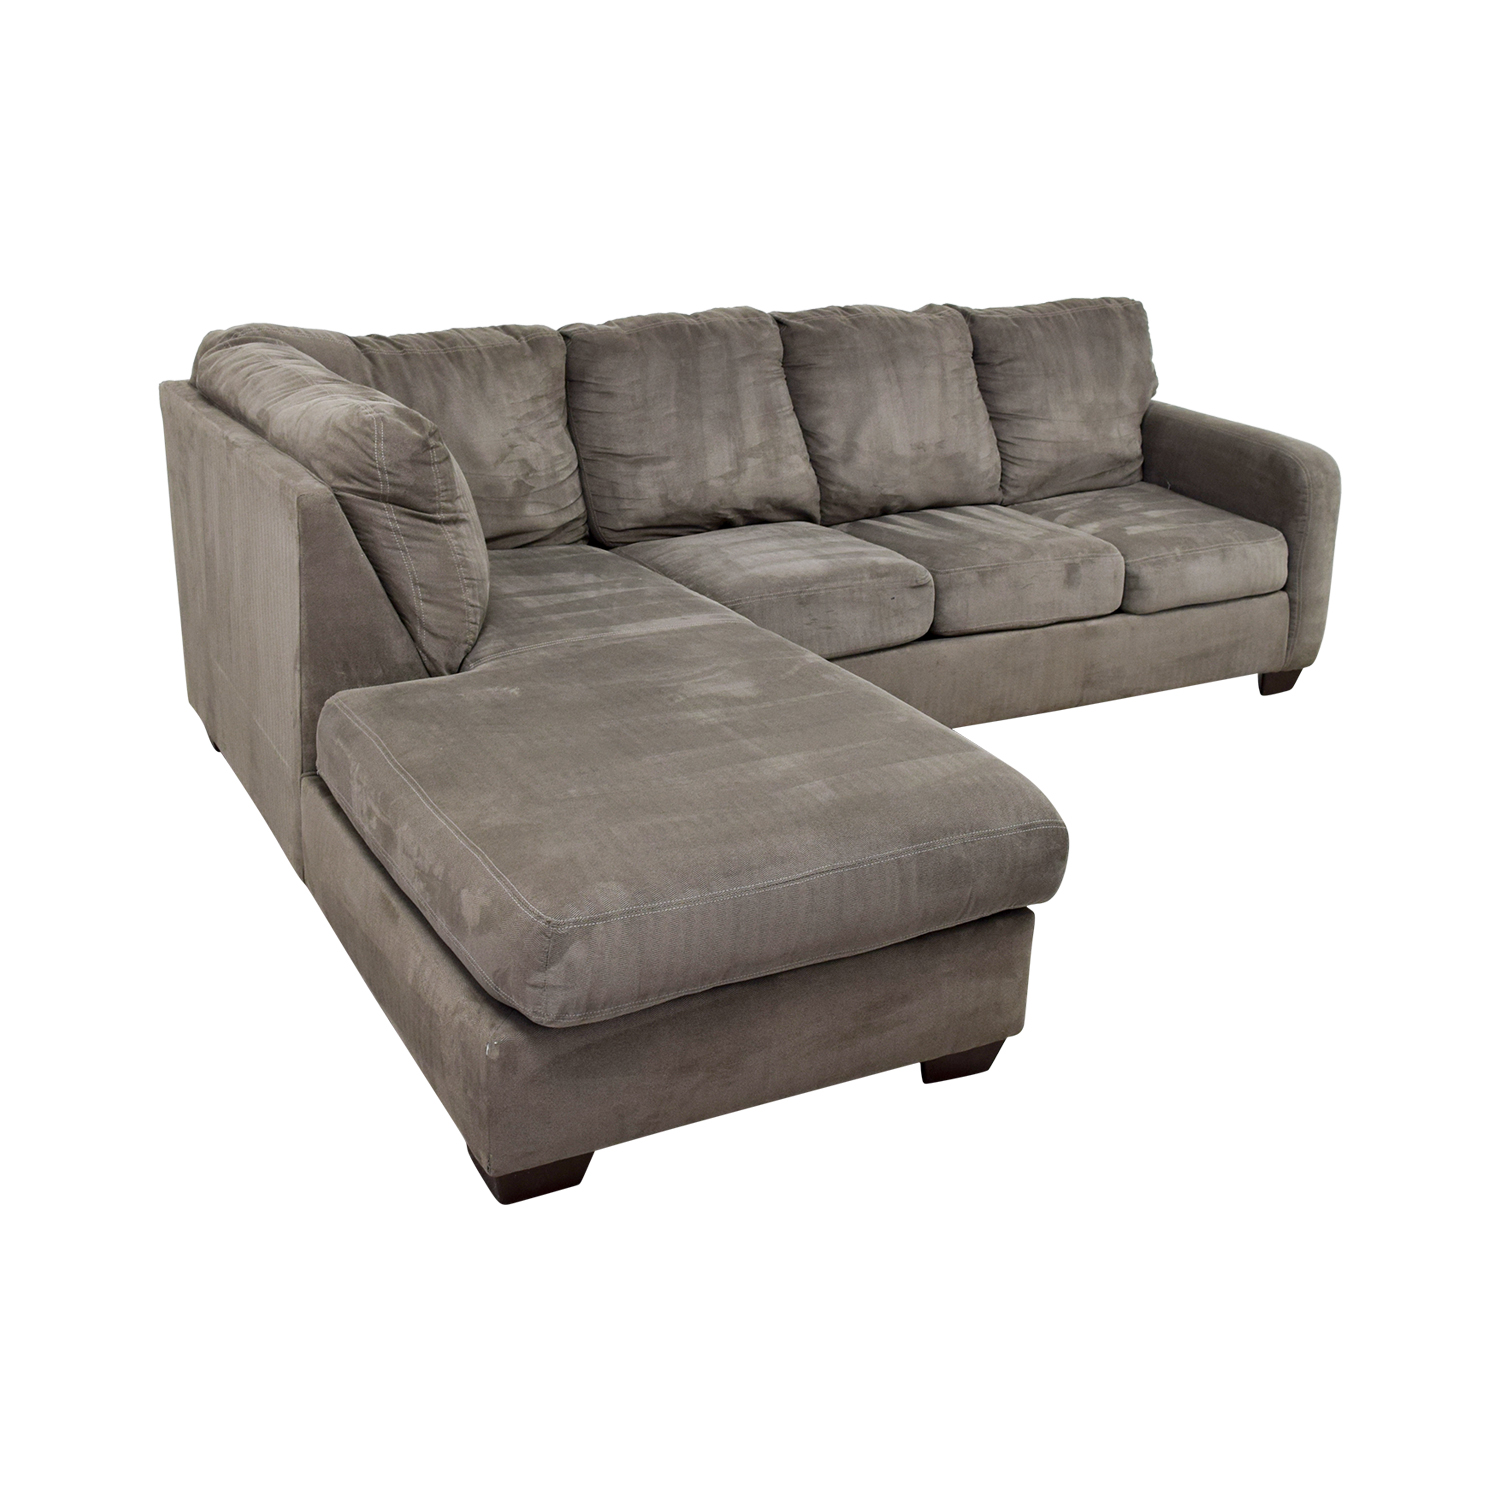 Sectional Sofas At Living Spaces: Living Spaces Living Spaces Zella Charcoal